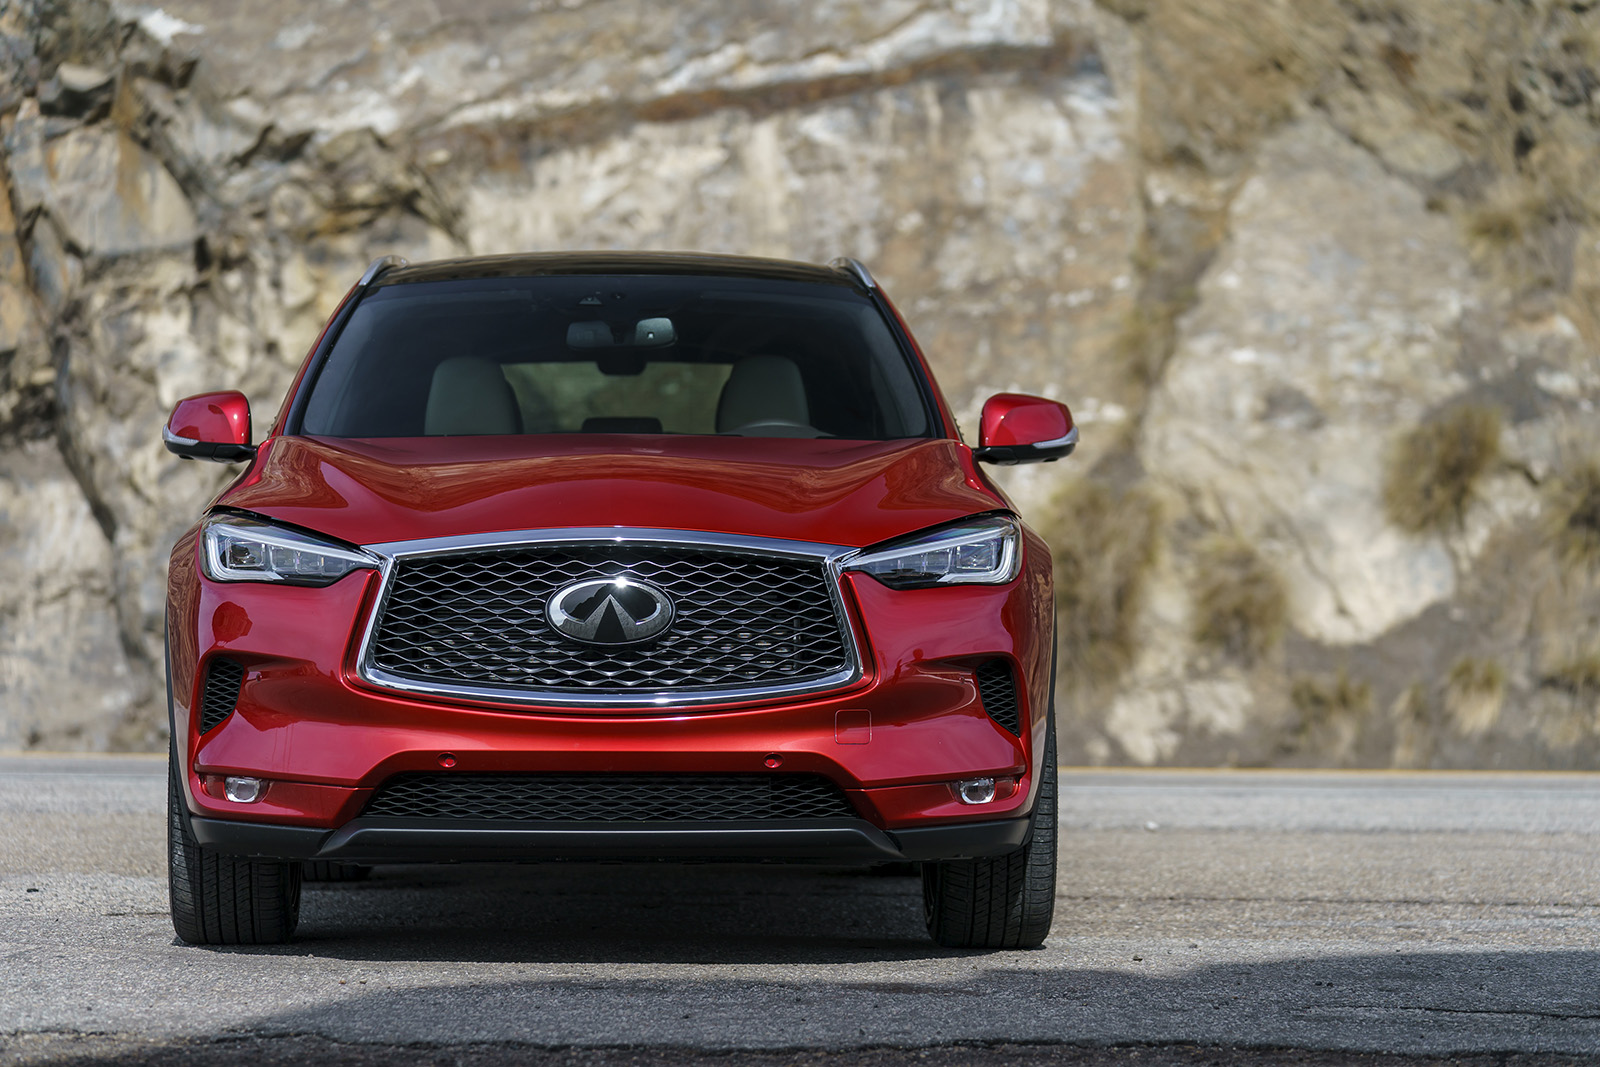 The 2019 Infiniti QX50 test drive results leave everyone impressed